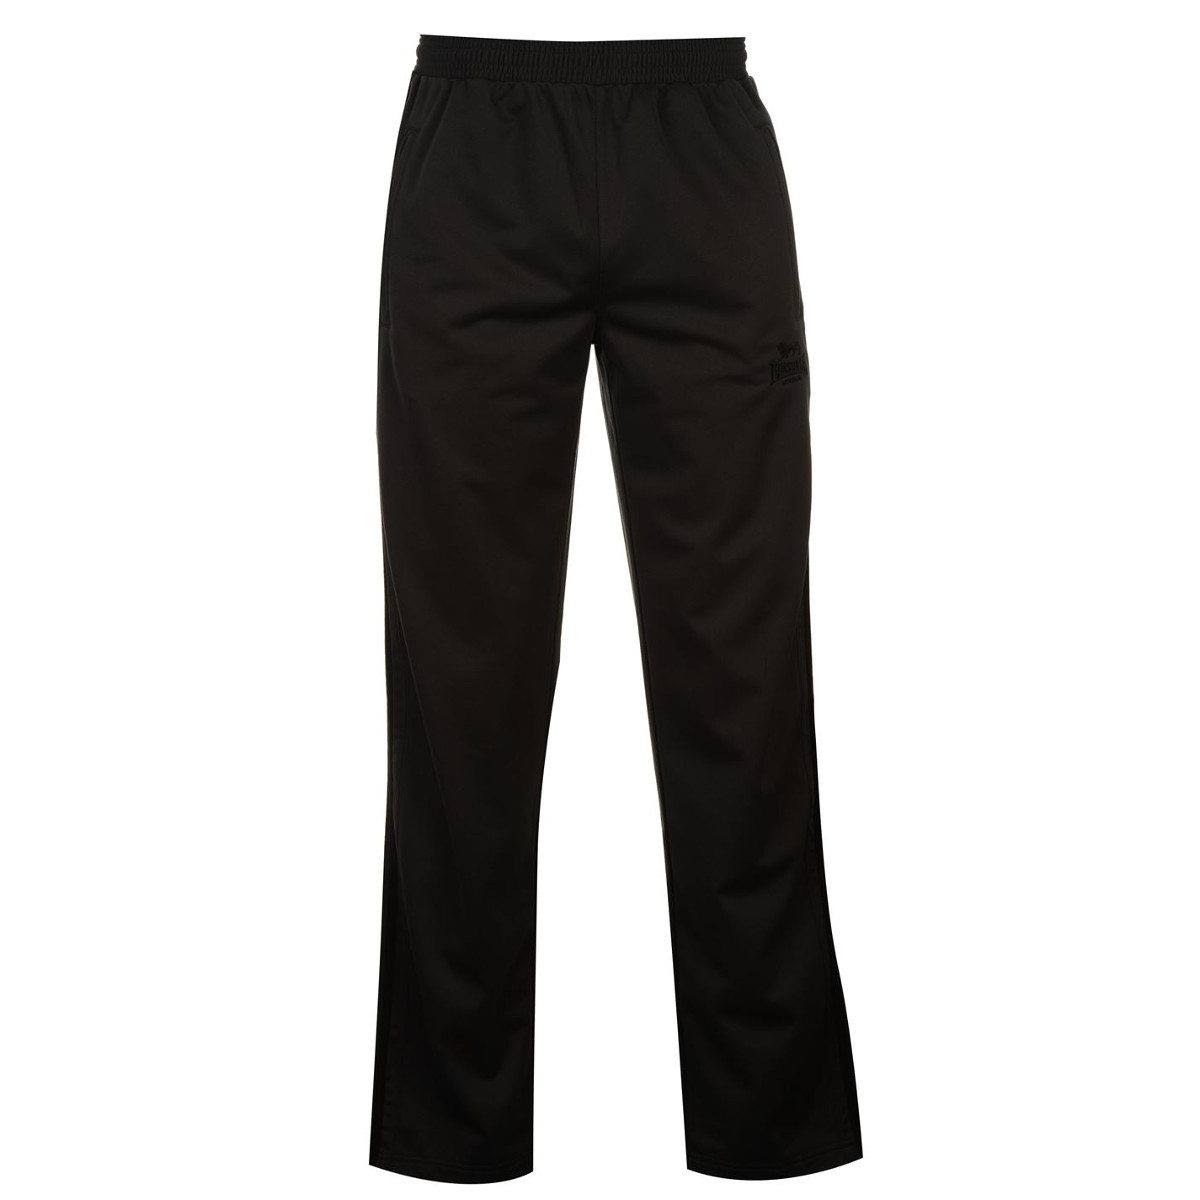 Lonsdale Men's Track Pants - Black, XS